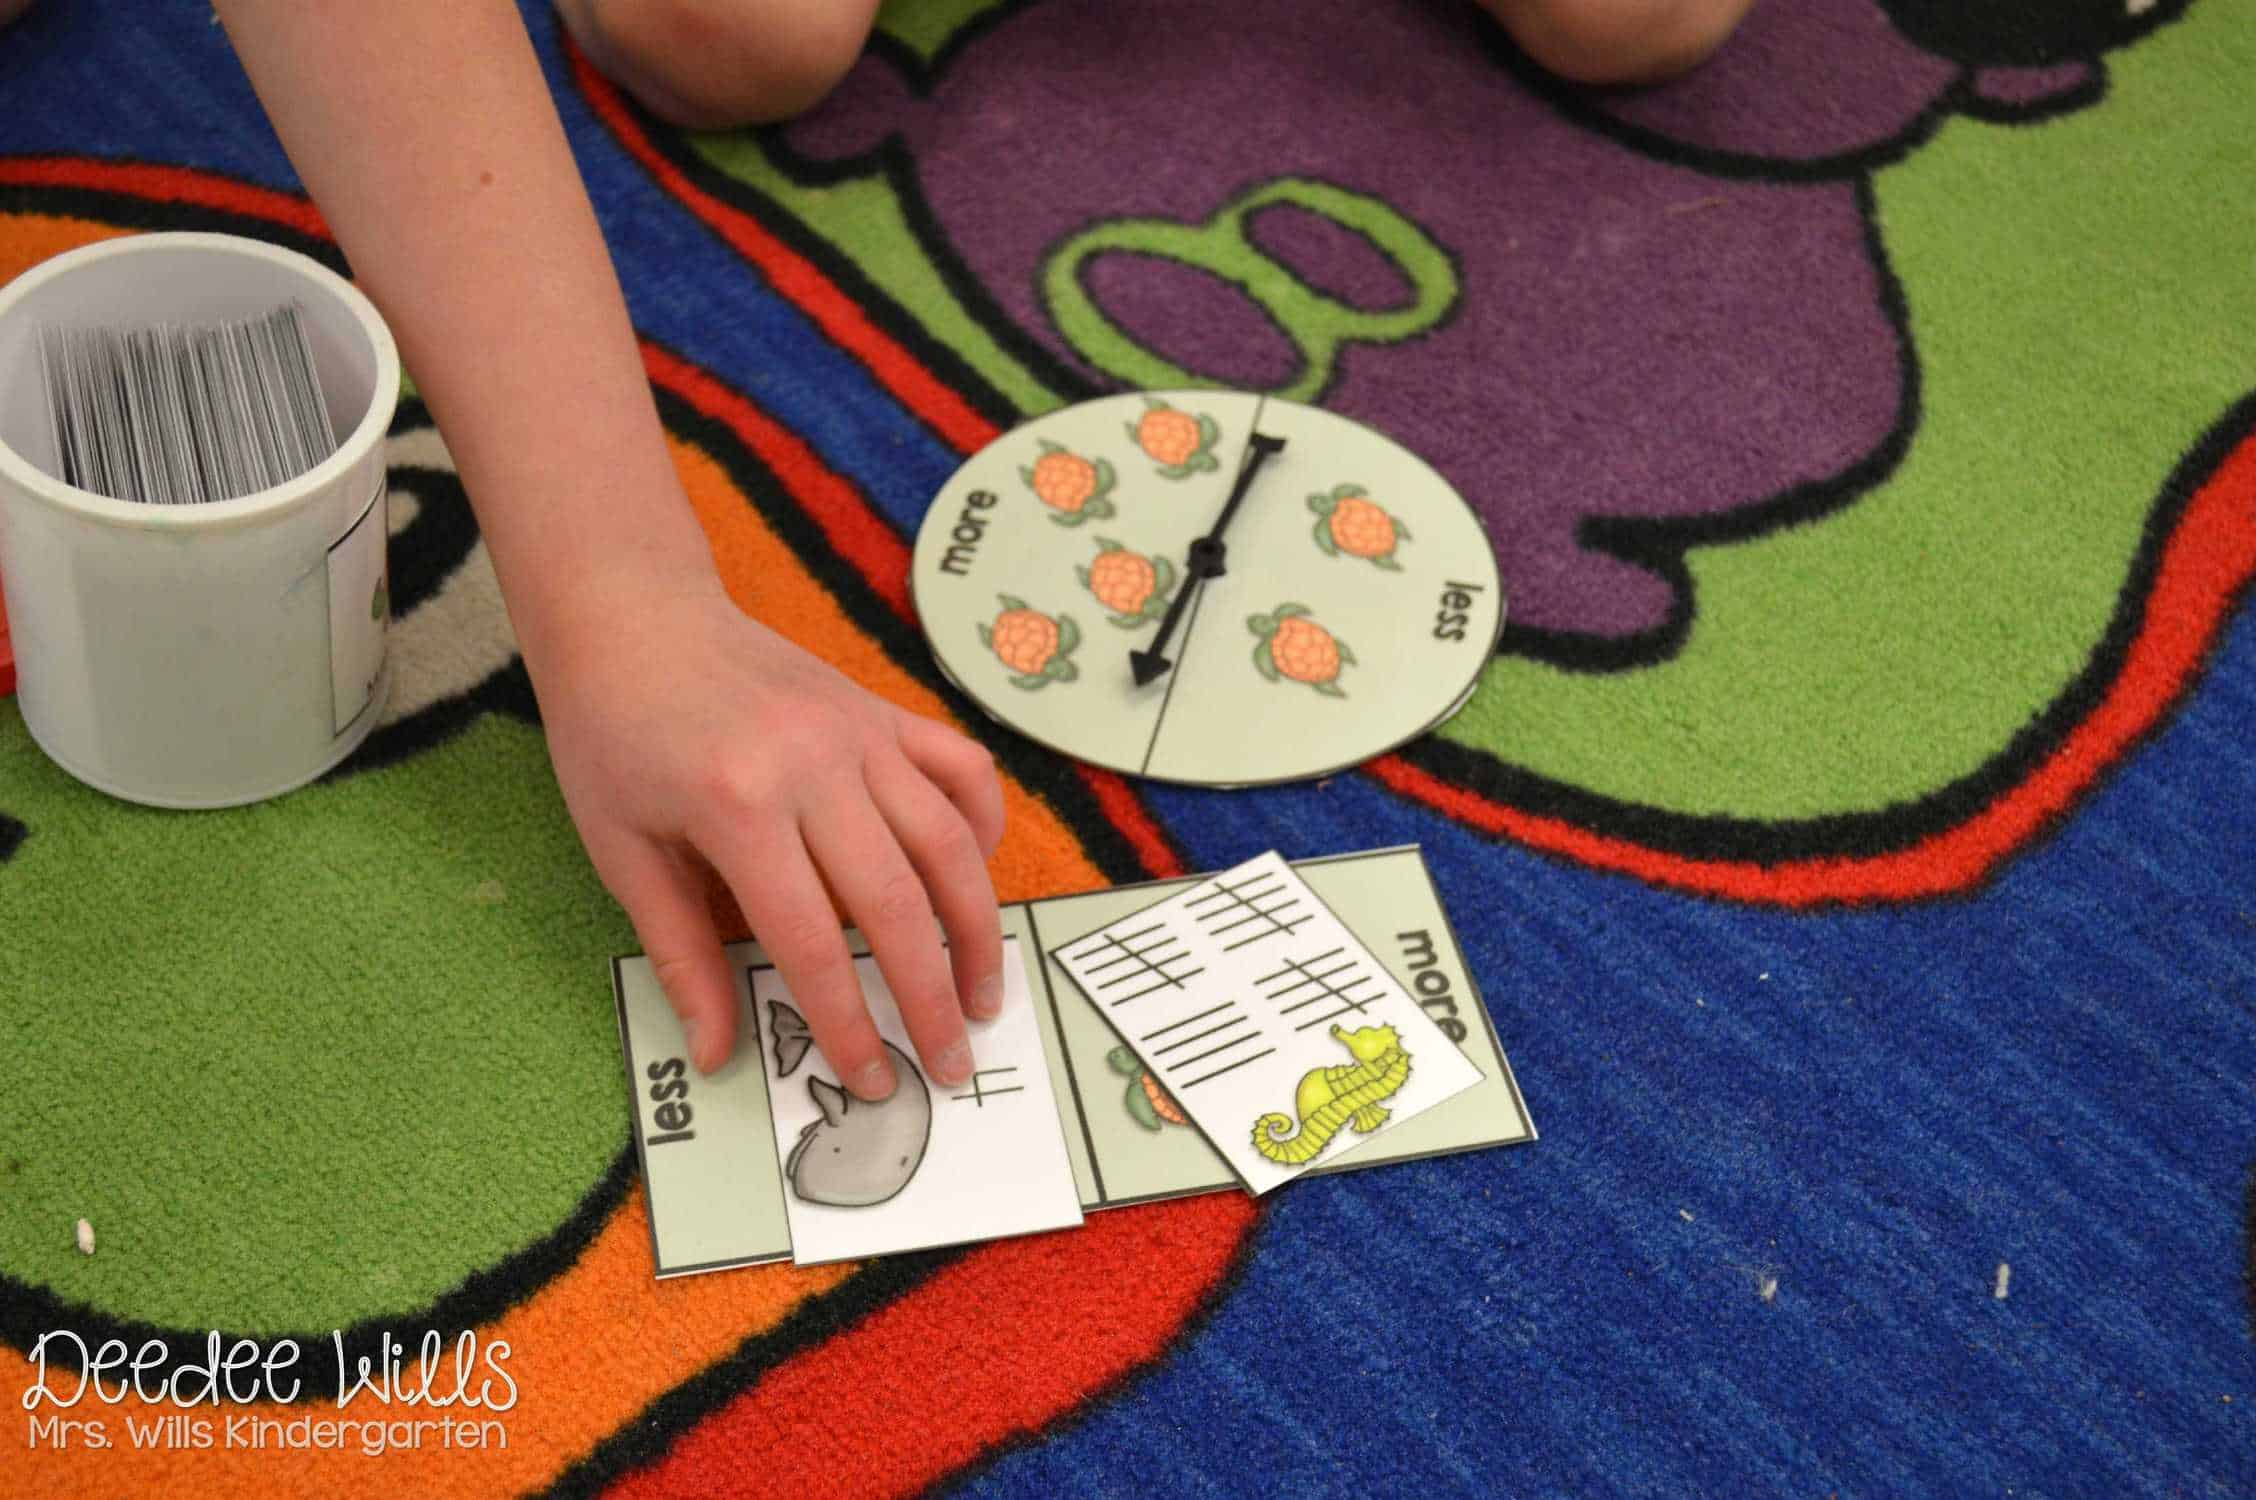 Paper saving ideas for your classroom